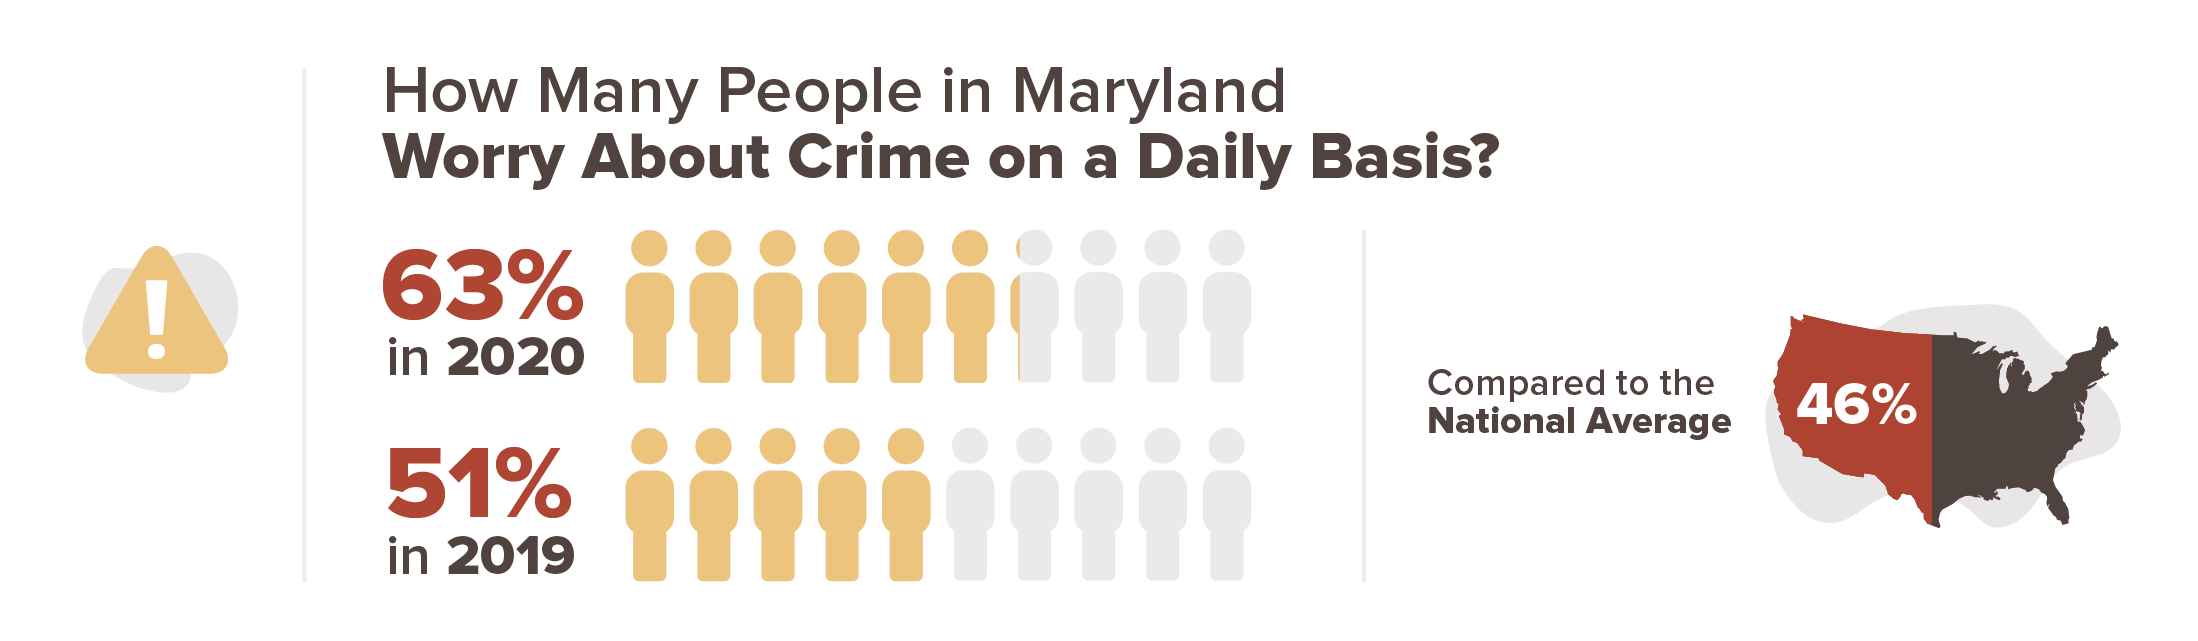 63% of Maryland residents worry about crime on a daily basis in 2020 compared to 51% in 2019.